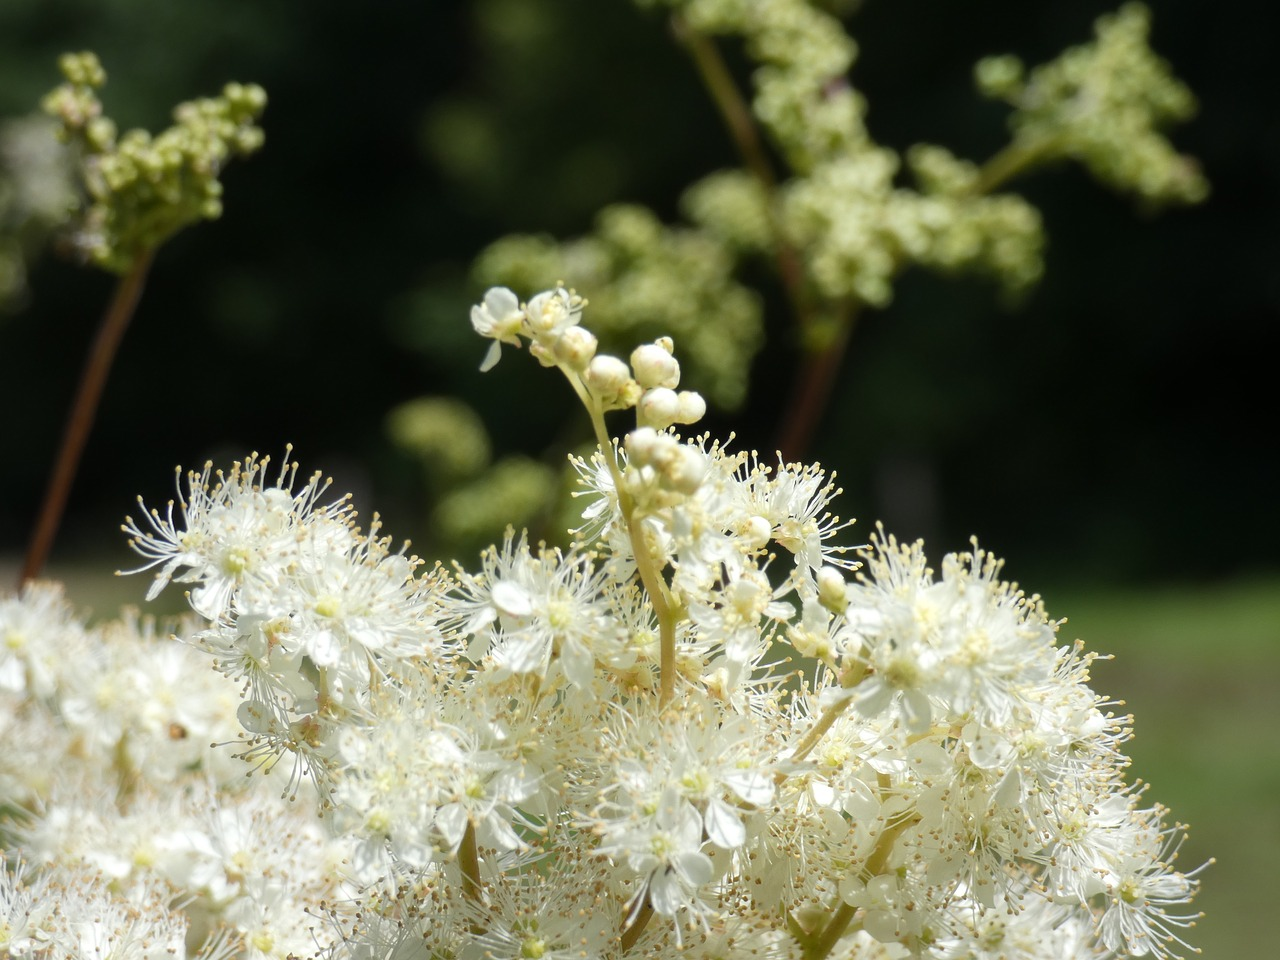 meadowsweet - Queen of the Meadows